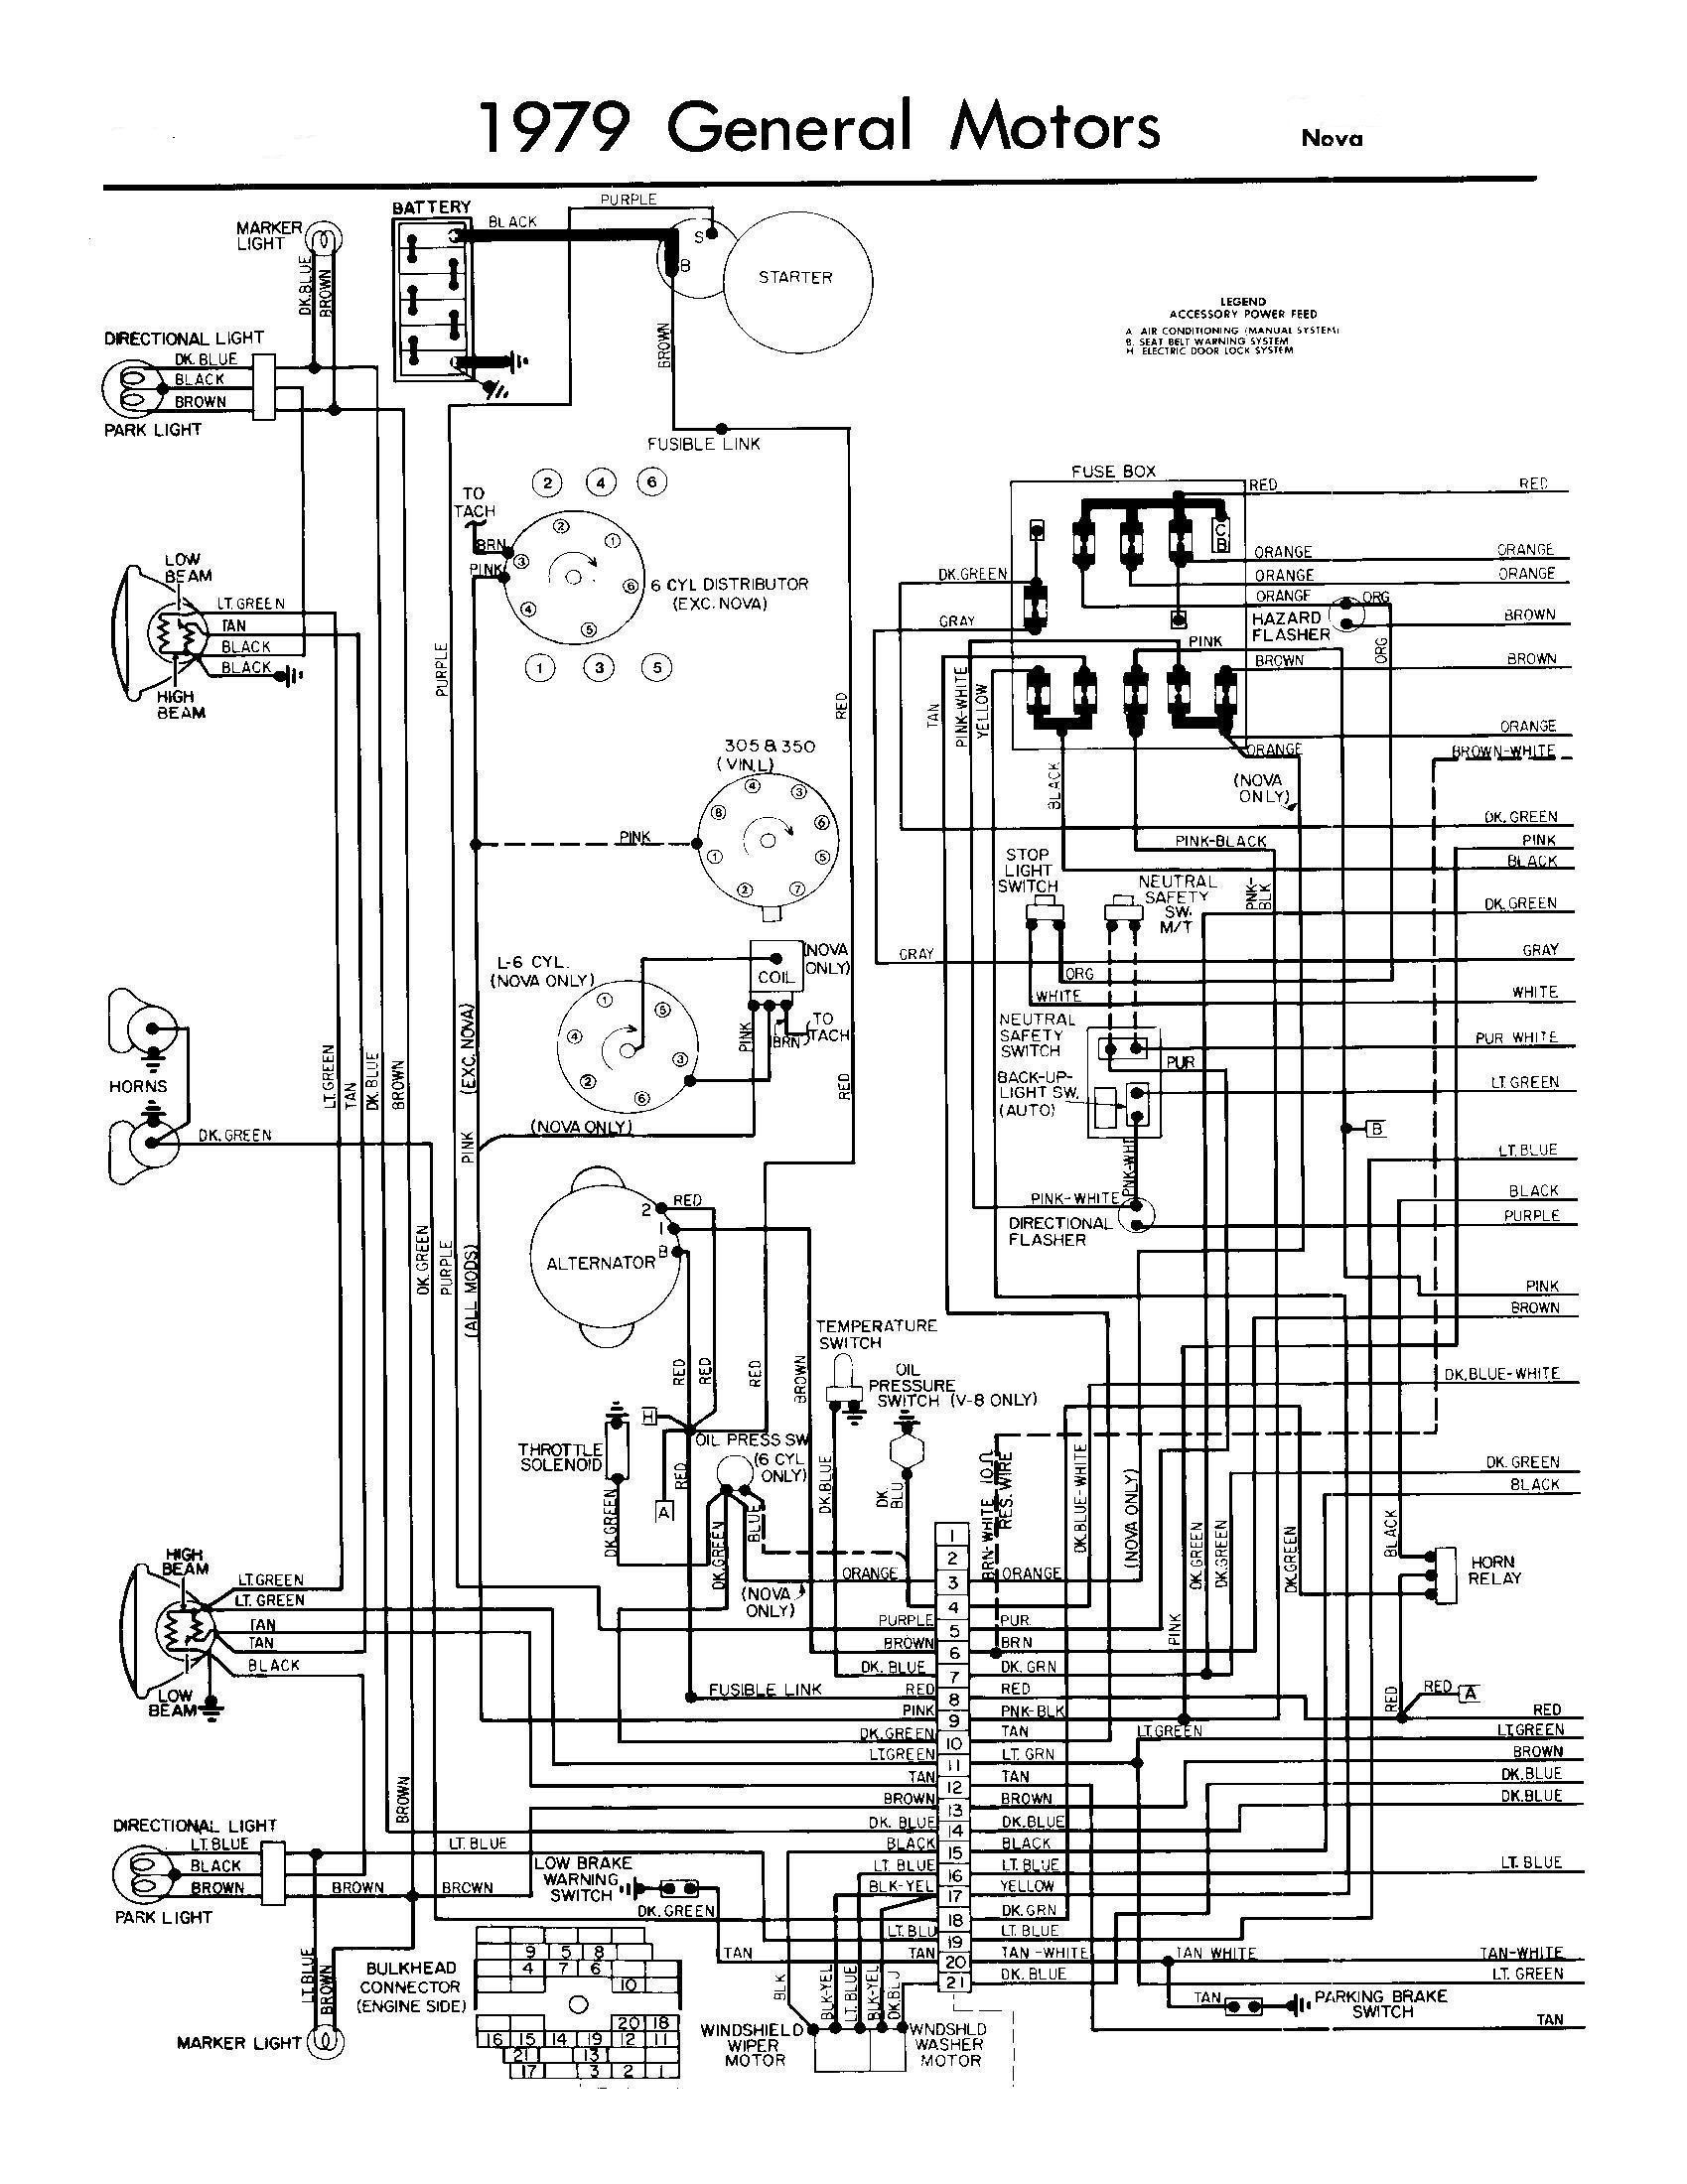 1969 cb175 wiring diagram fuse box \u0026 wiring diagram